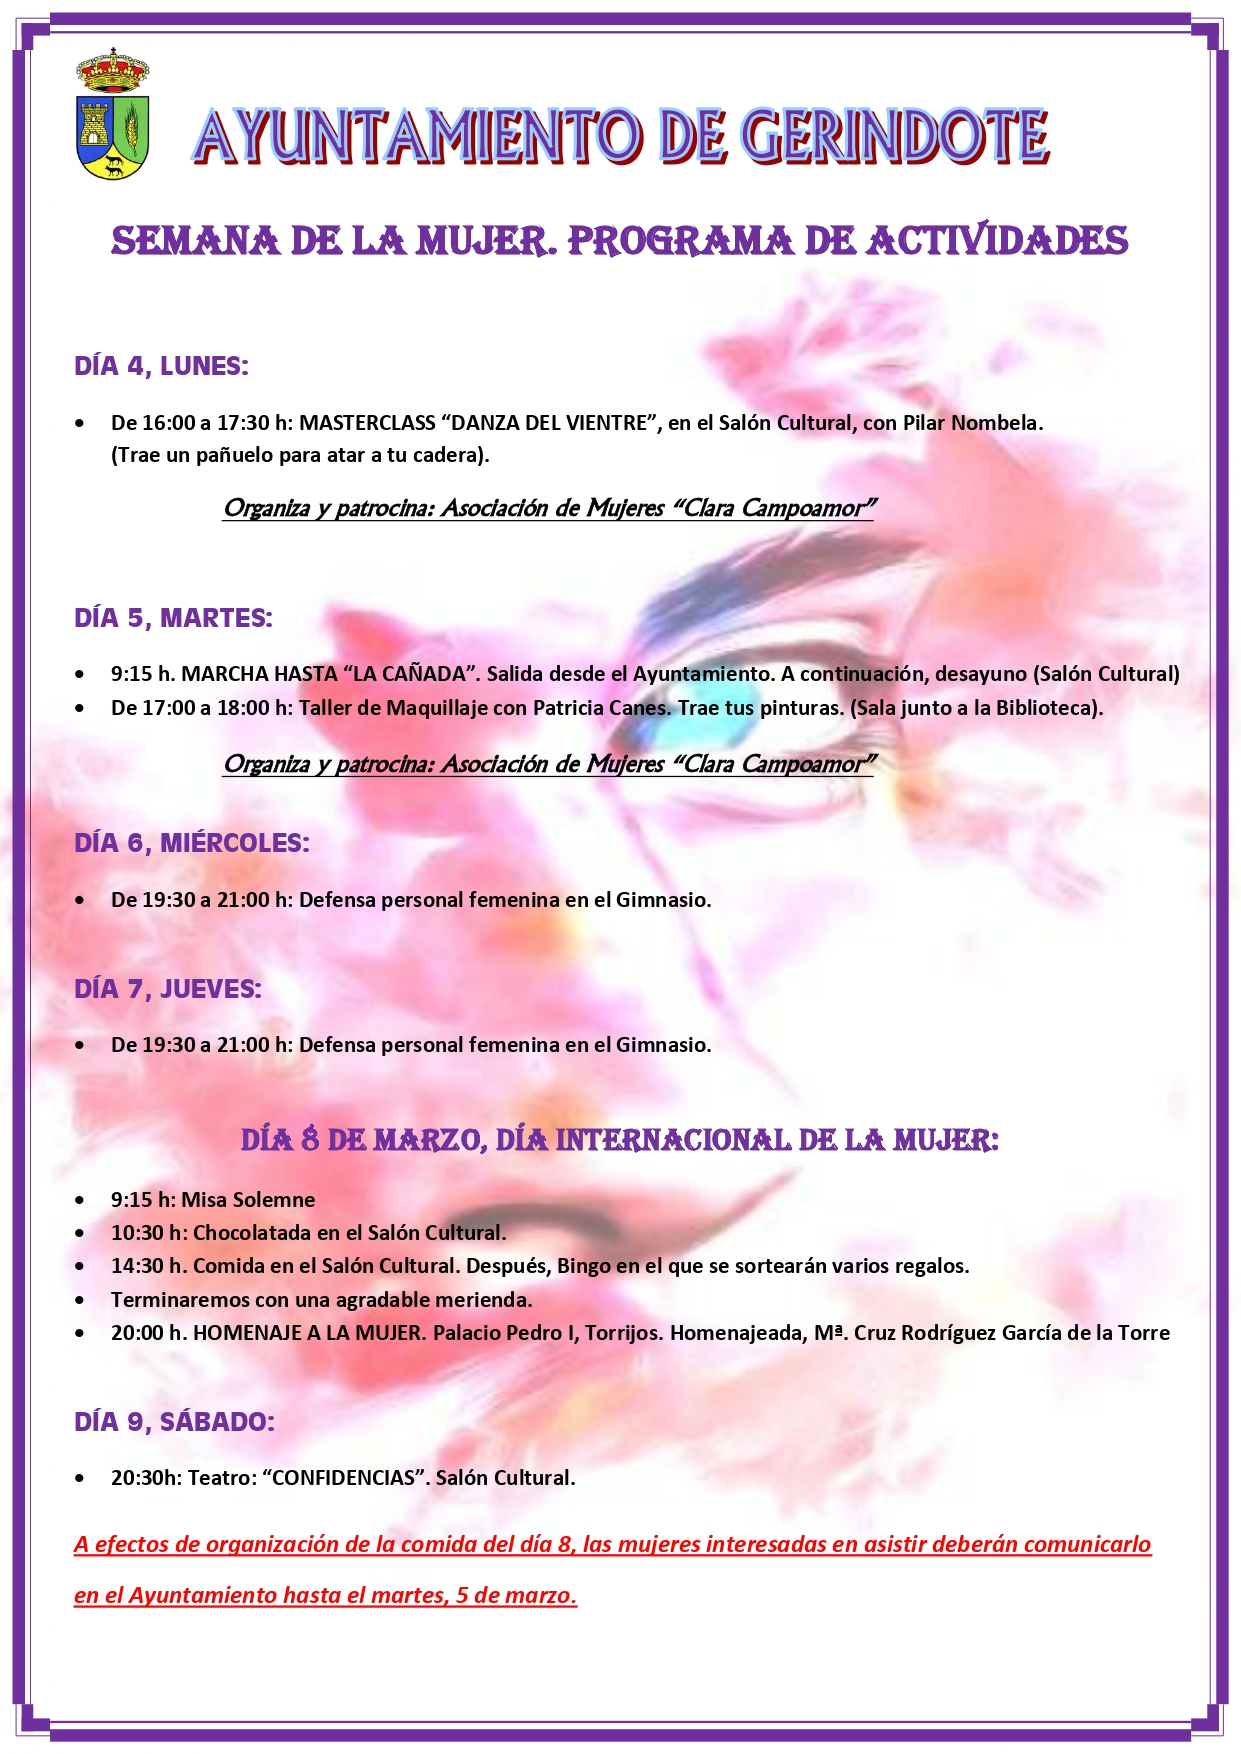 CARTEL 8 DE MARZO OK (1)_pages-to-jpg-0001